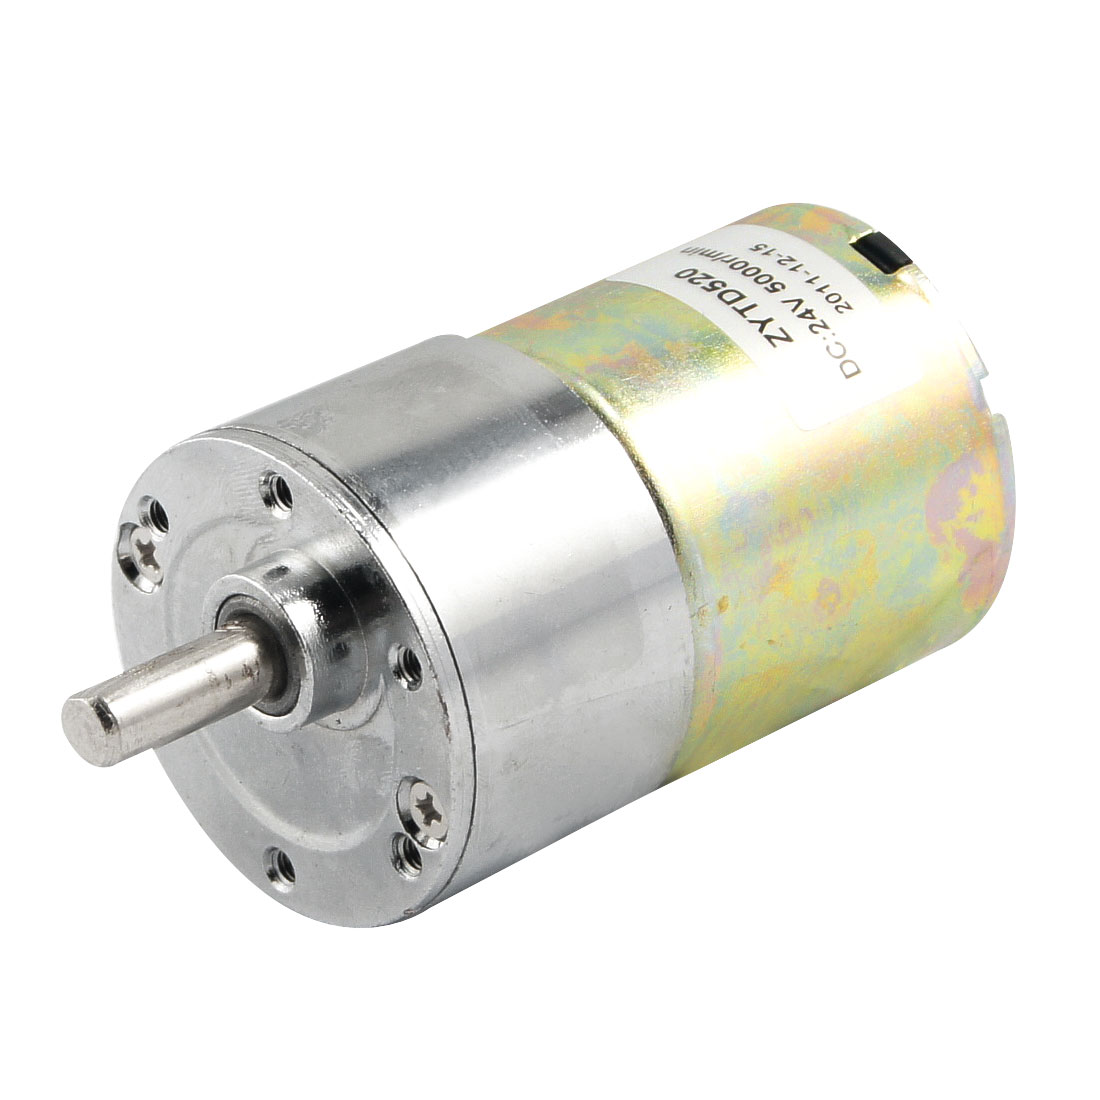 400RPM Output Speed 36mm Diameter 24V 0.33A DC Geared Motor